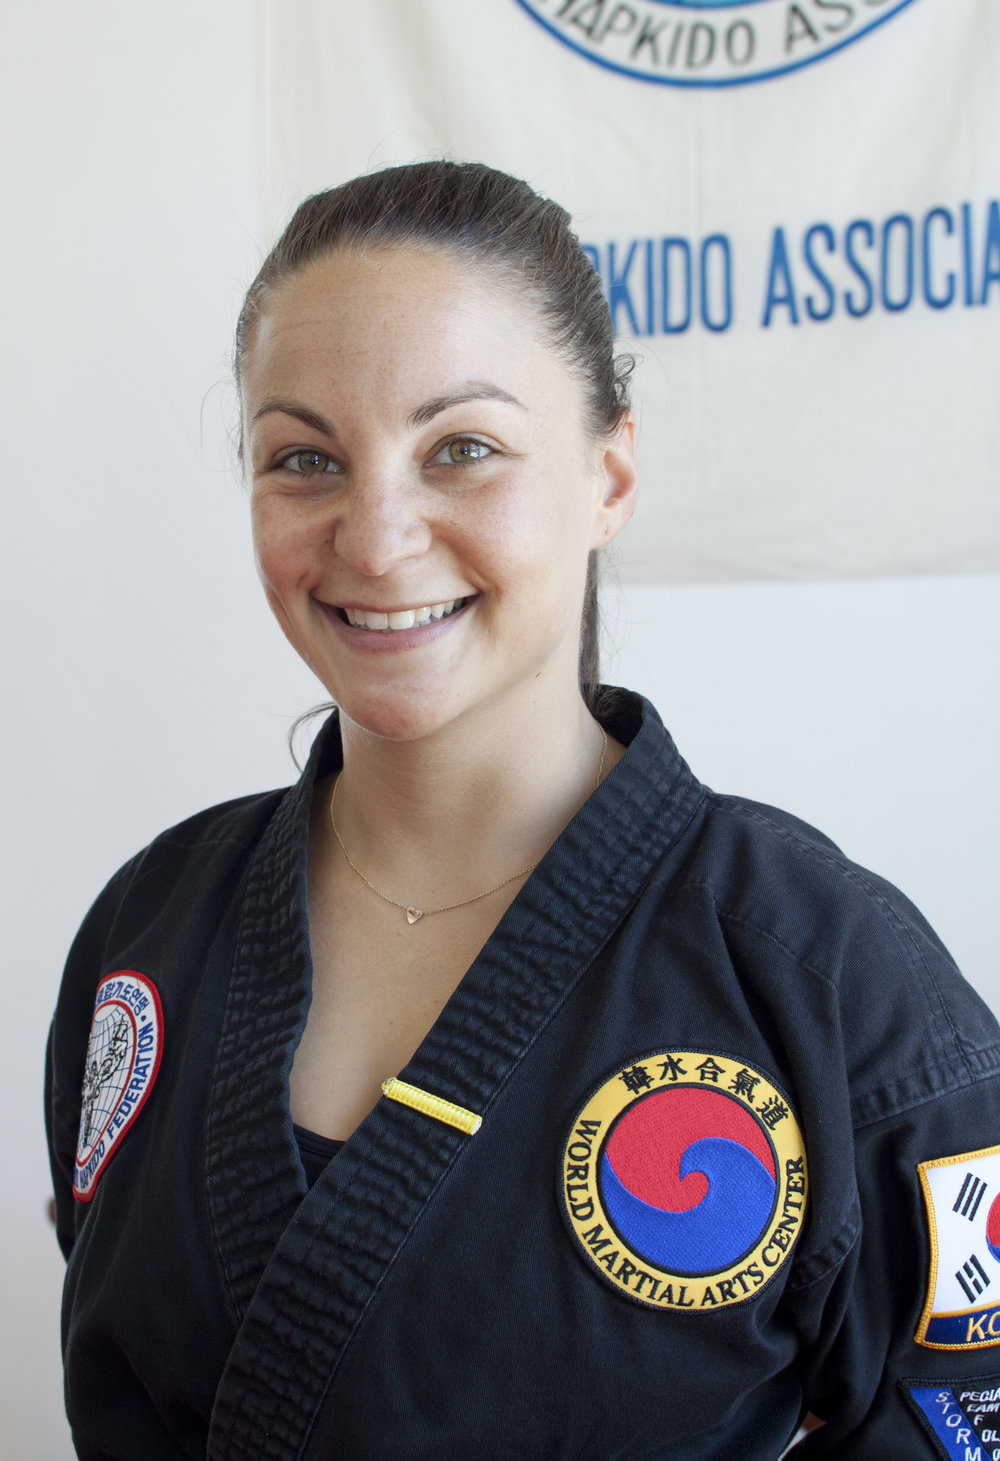 Certified Instructor Lauren Segal  directs the children's program, including the afterschool and camps, and manages much of the daily operations at WMAC.  Lauren began her training in HapKiDo in 2012, and has been teaching the children's classes for several years. She also teaches an adult class on Mondays, which is a high energy, focused 45 minutes.